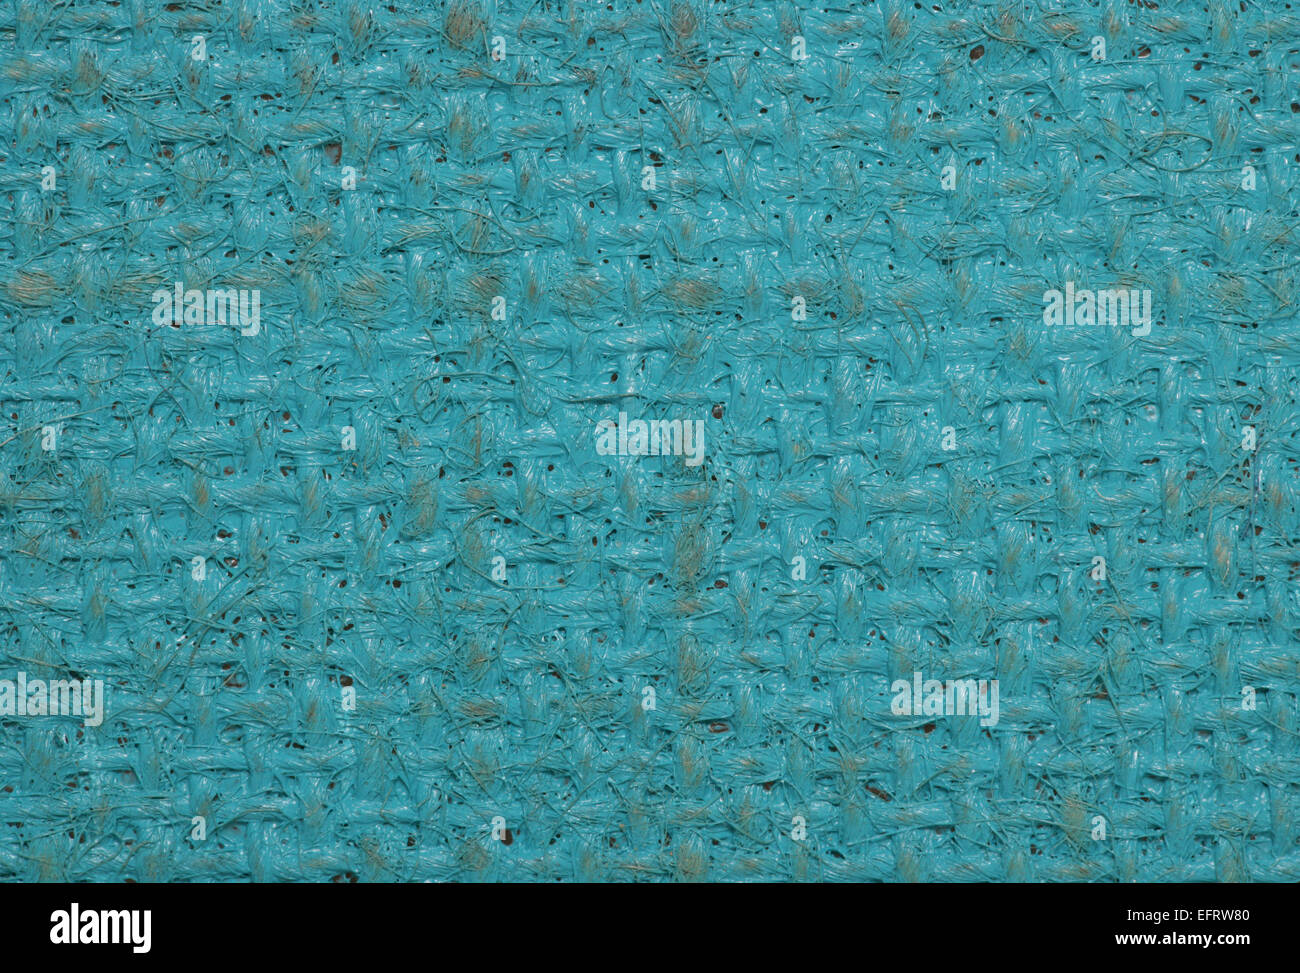 blue painted hessian canvas abstract background - Stock Image